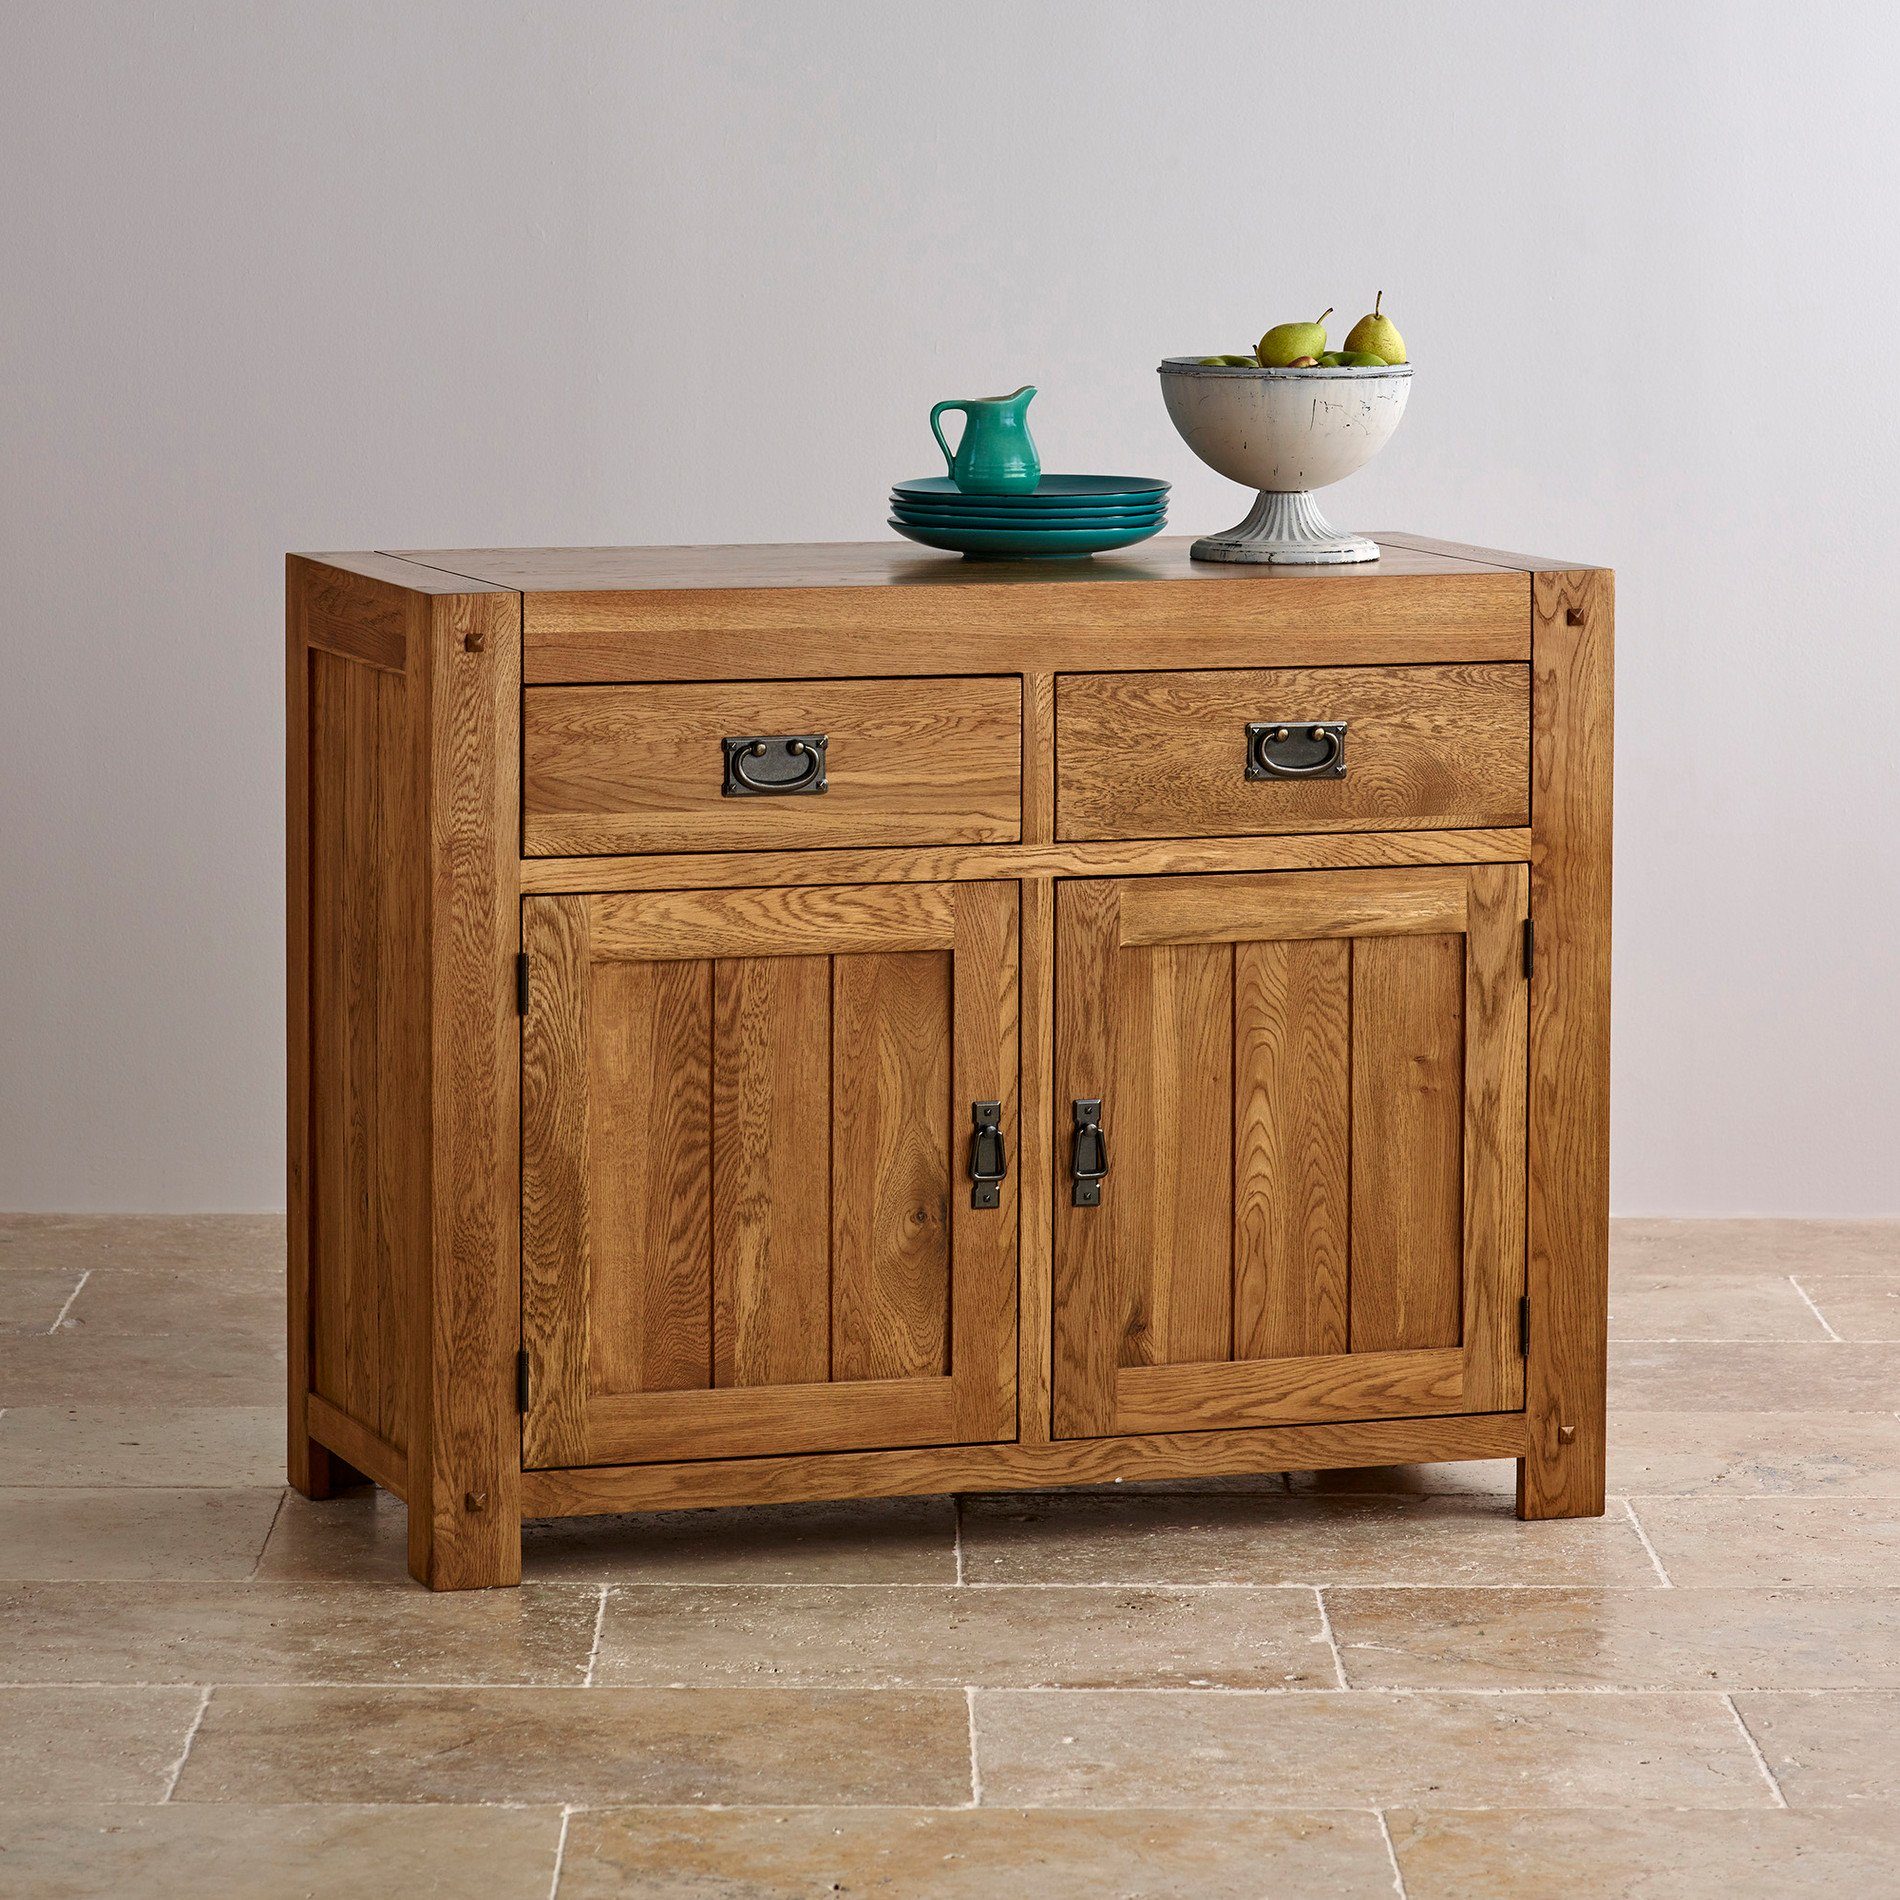 Quercus rustic solid oak small sideboard furniture land